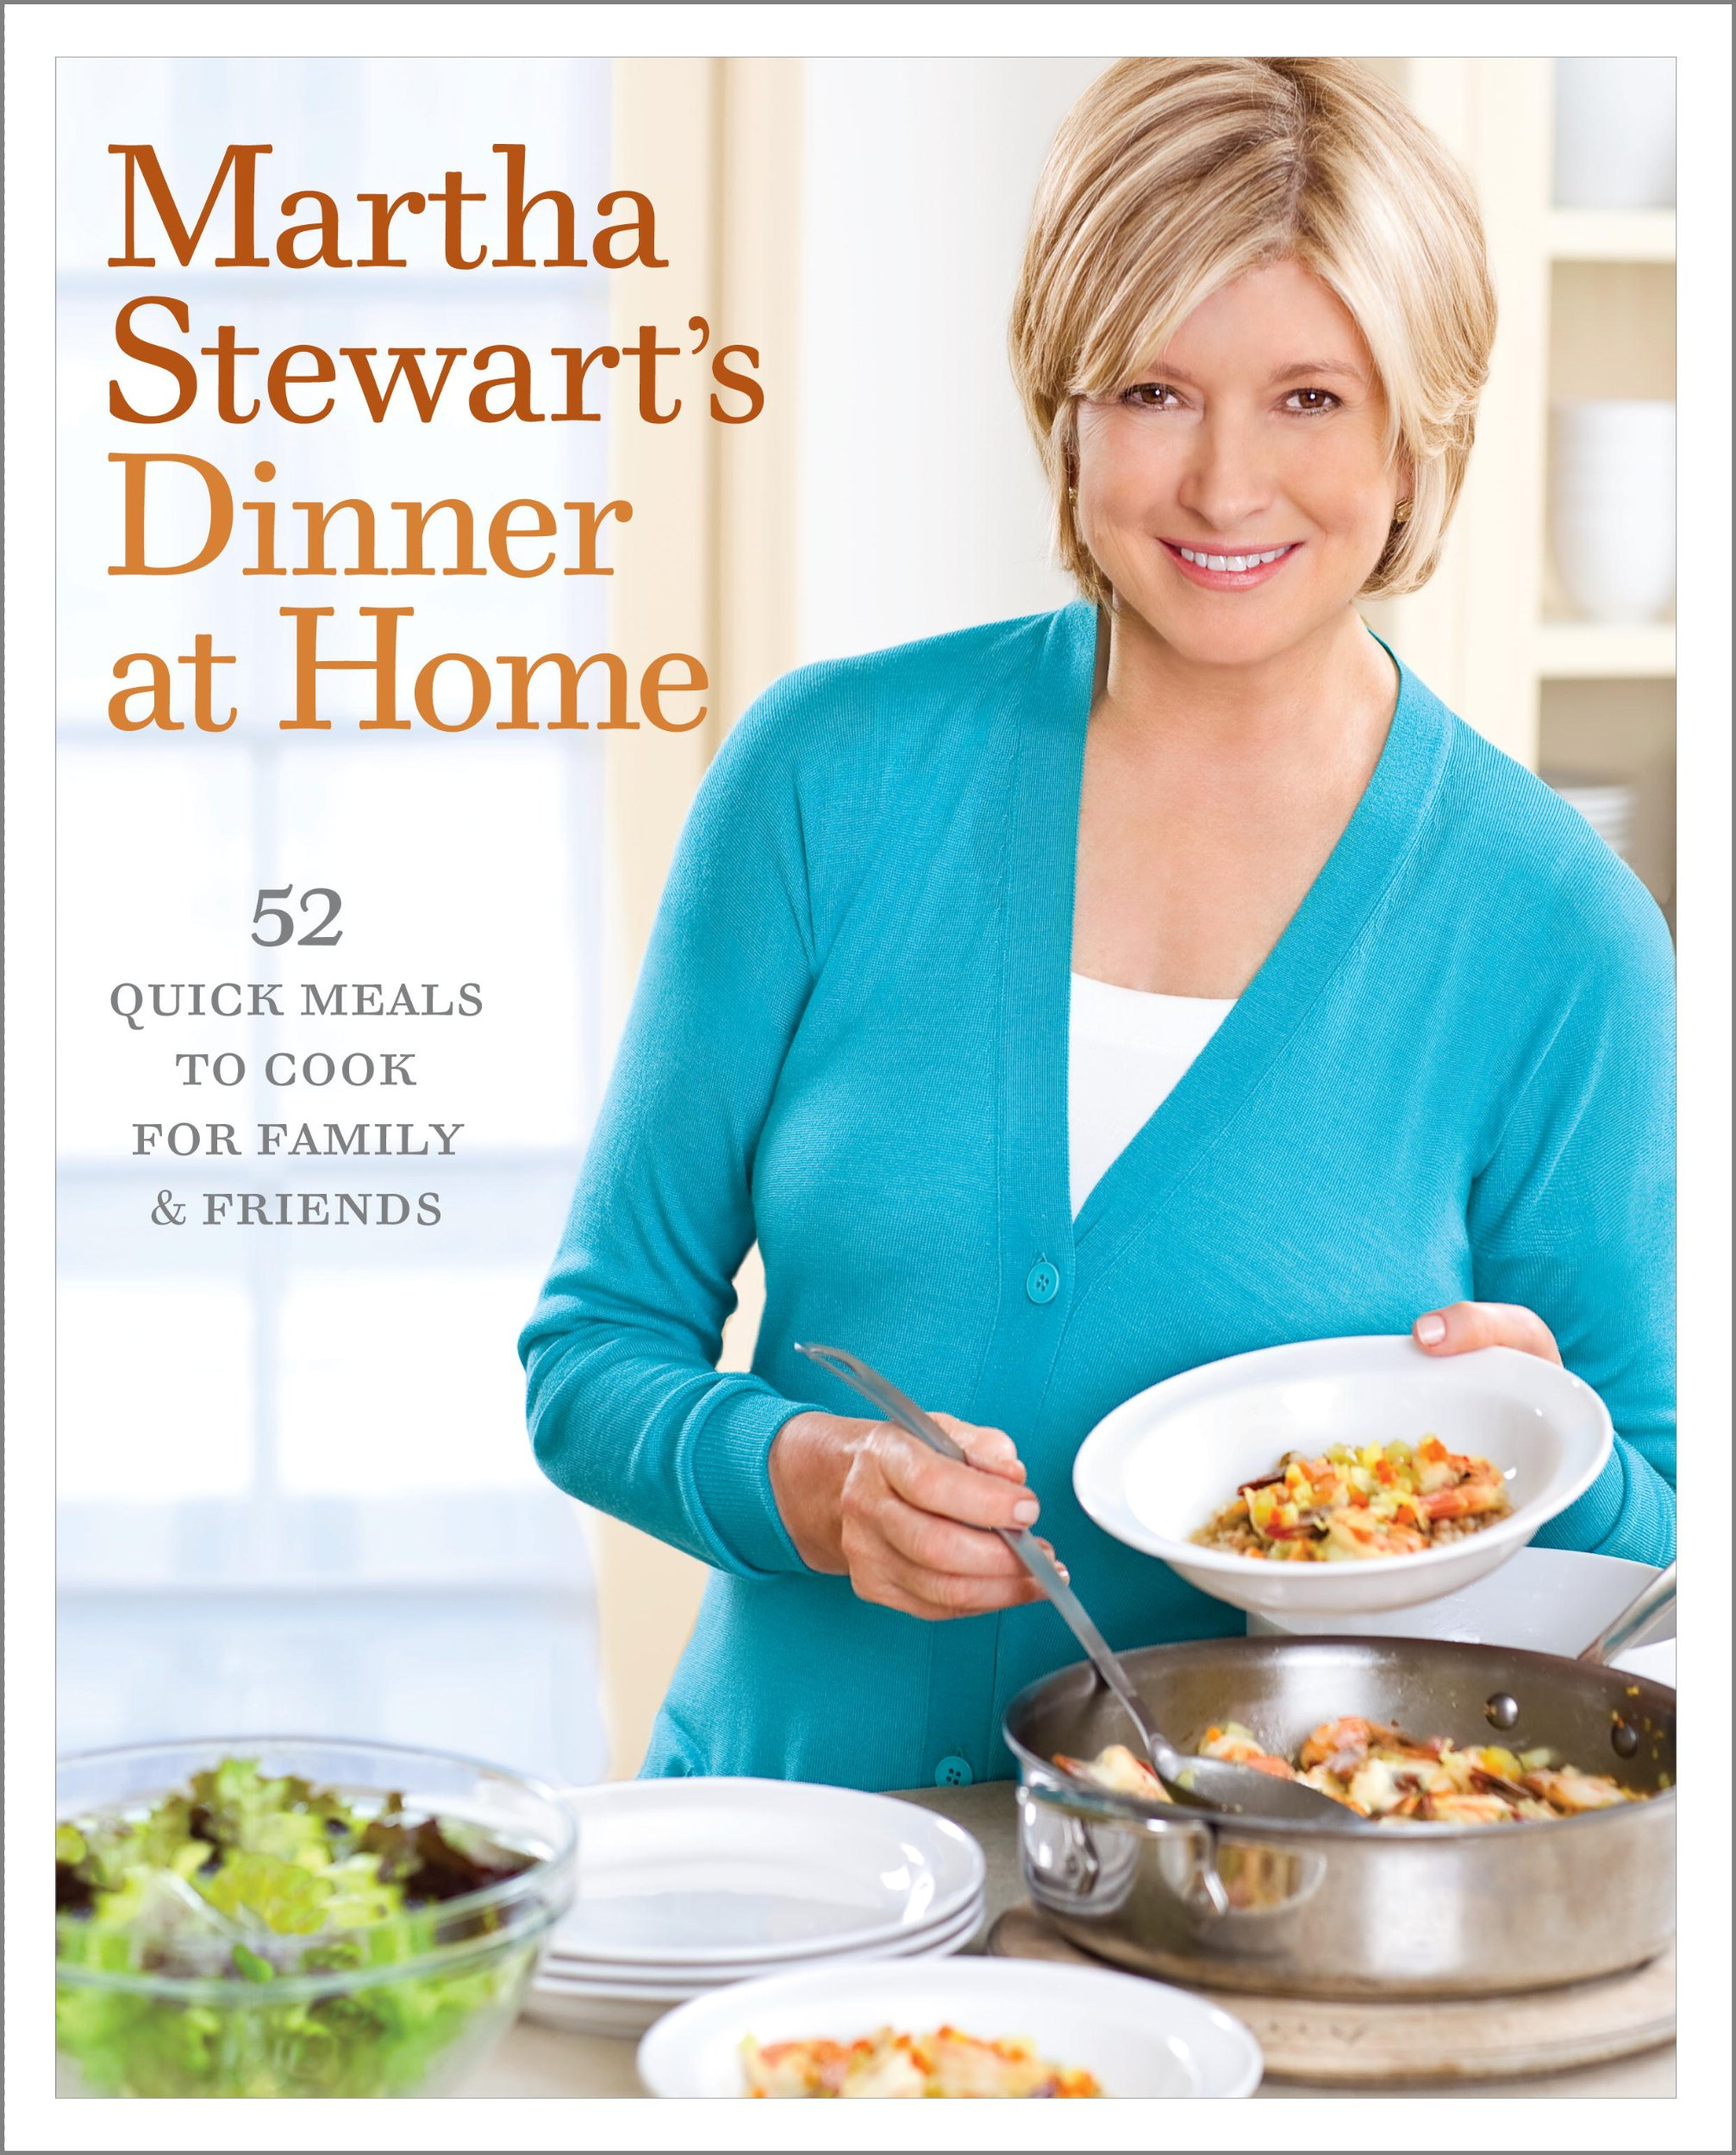 Martha Stewart S Dinner At Home 52 Quick Meals To Cook For Family And Friends Martha Stewart 9780307396457 Amazon Com Books